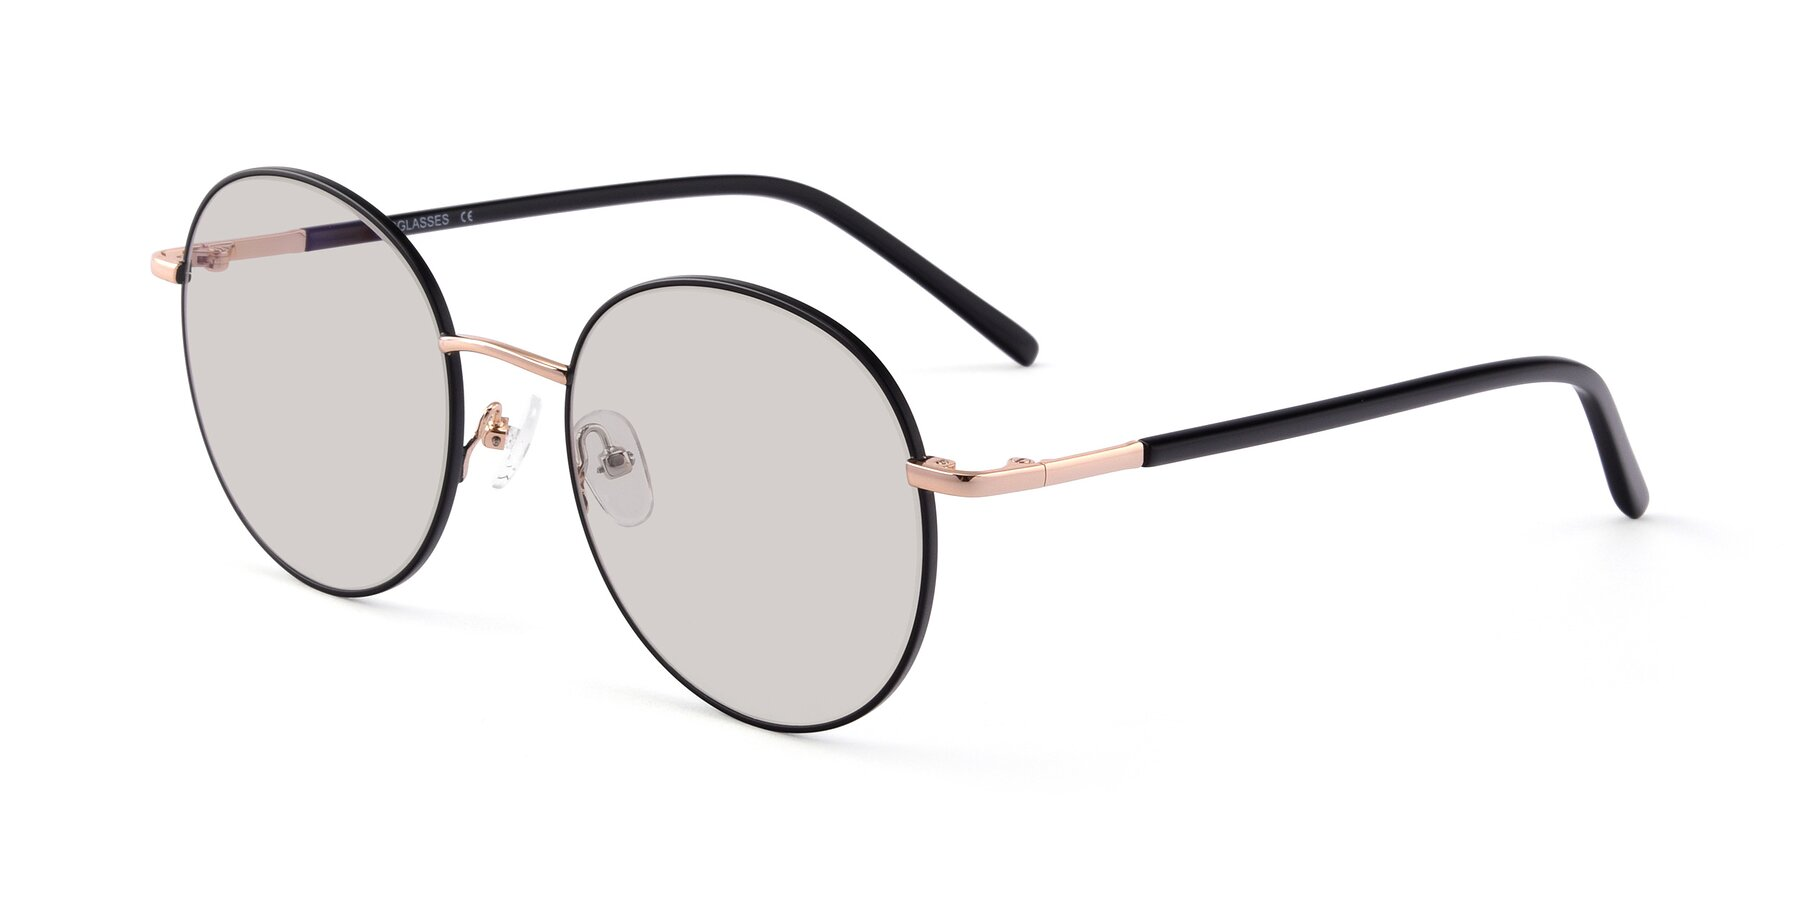 Angle of Cosmos in Black-Gold with Light Brown Tinted Lenses